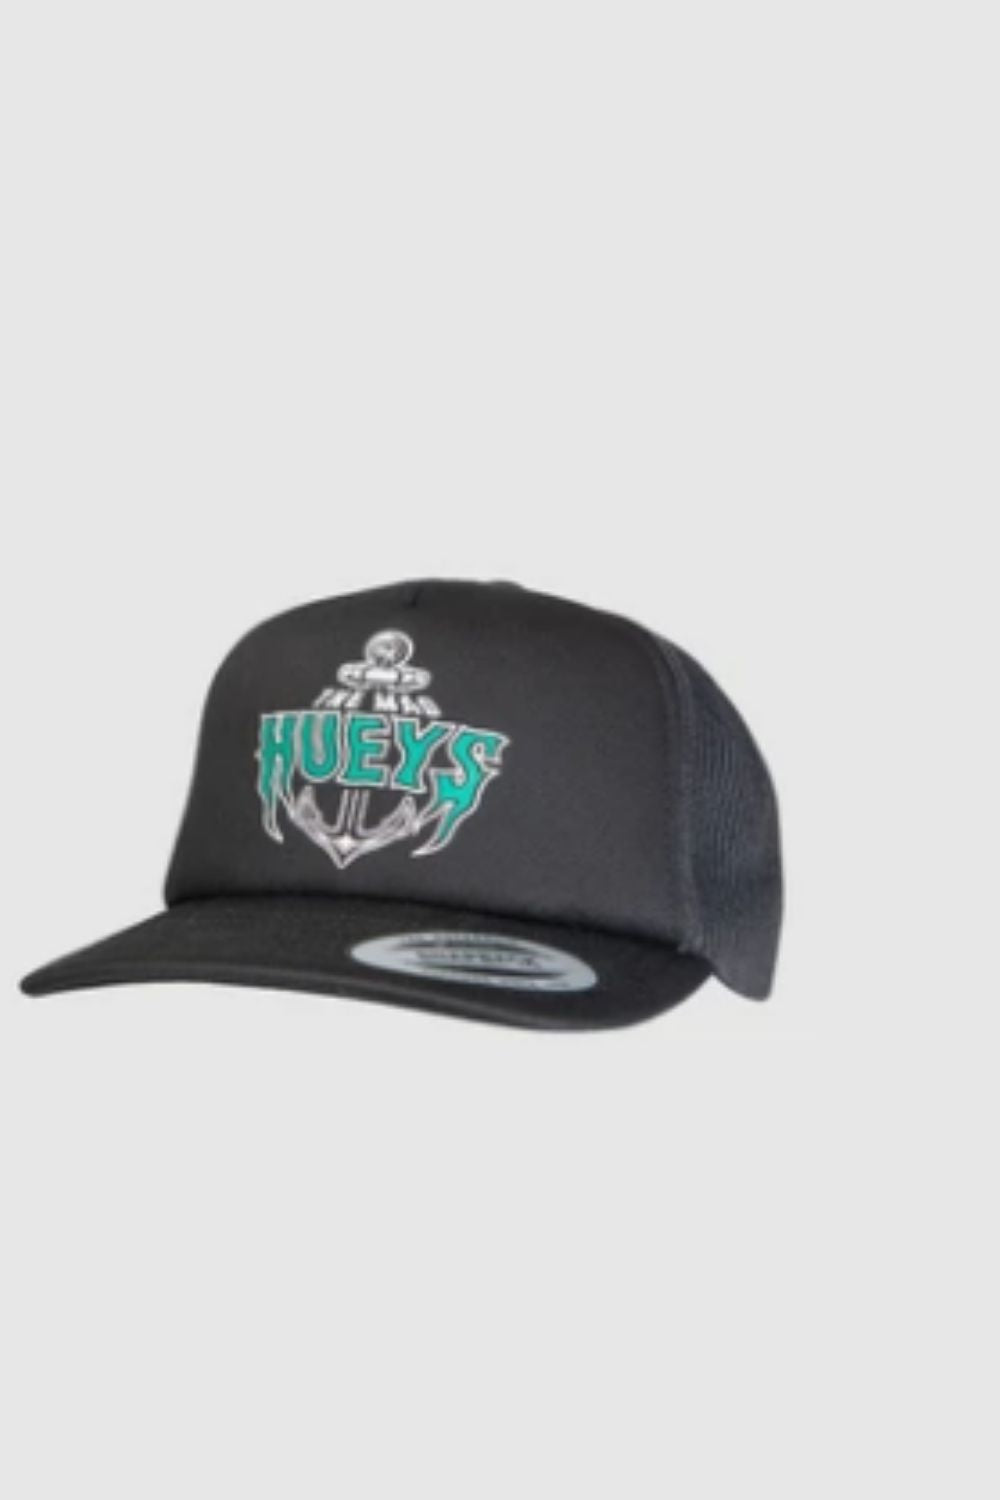 The Mad Hueys Youth Keelhauled Foam Trucker